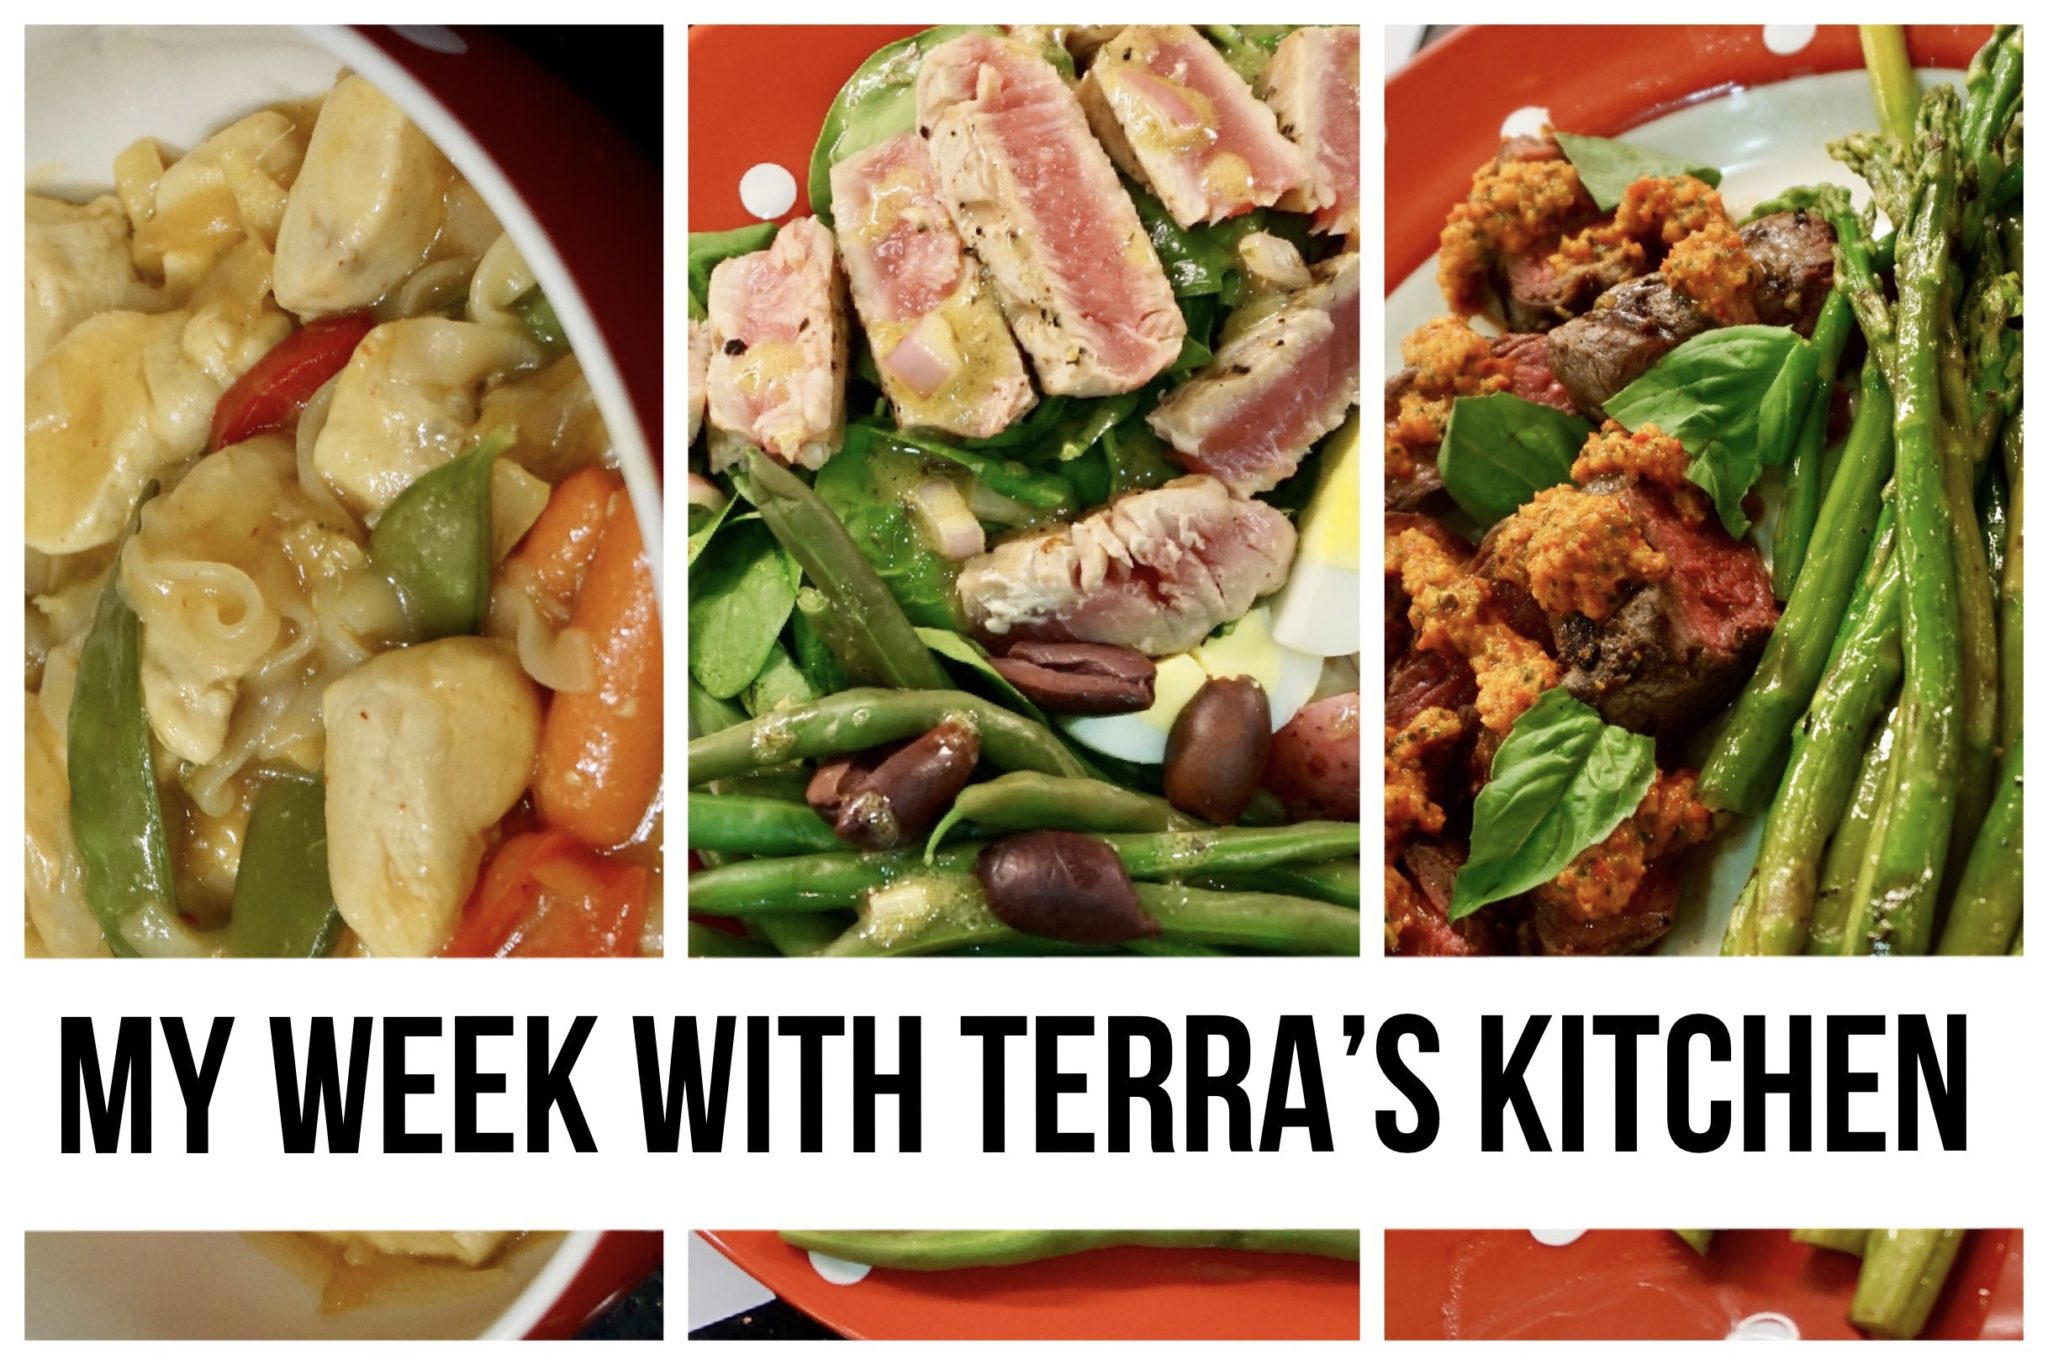 My Week with Terra's Kitchen